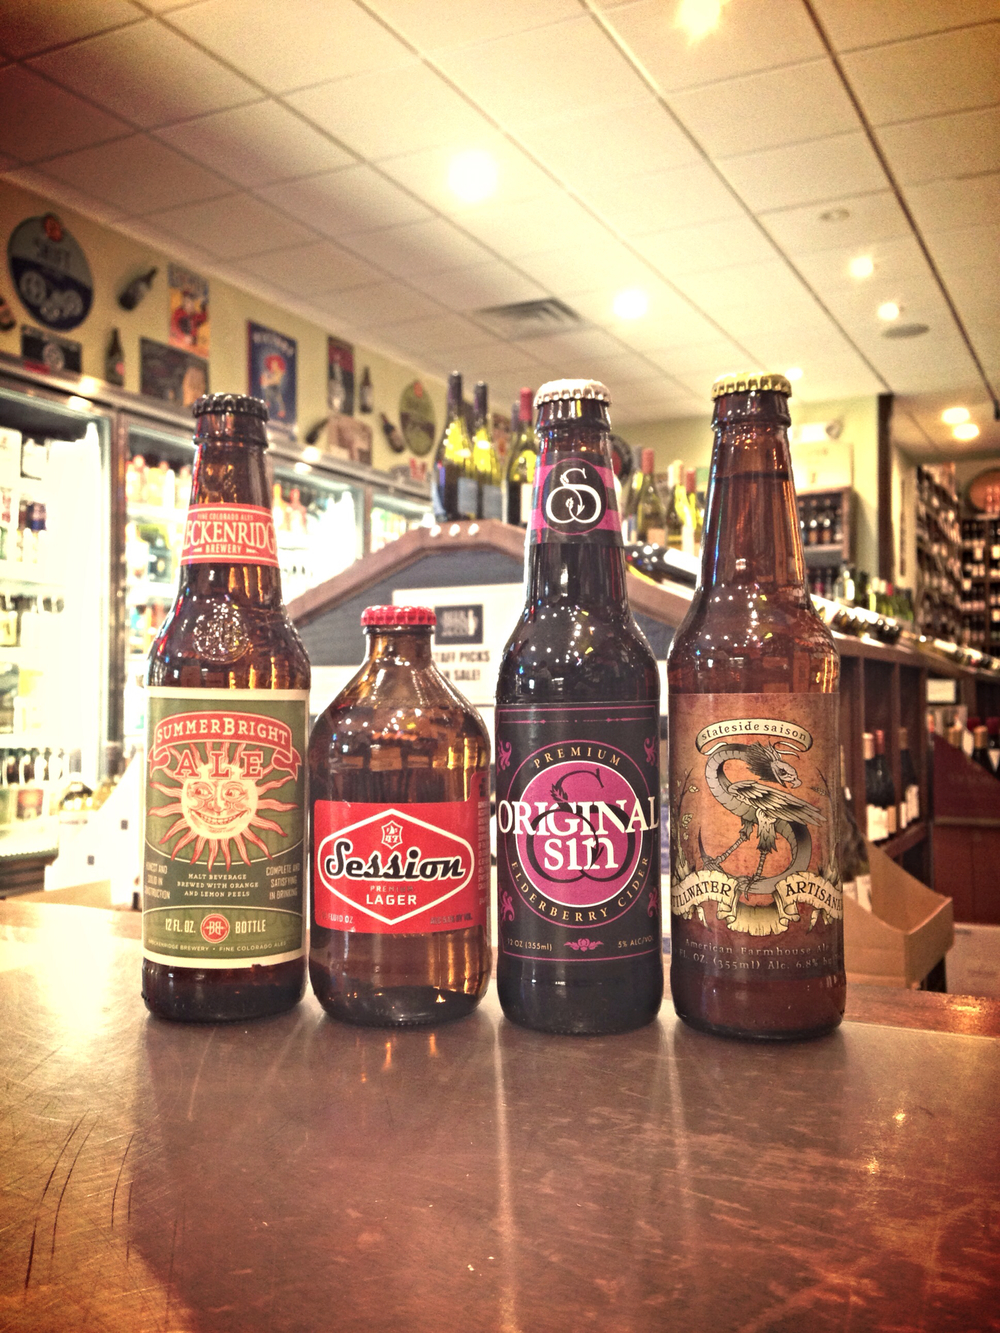 Breckenridge Summerbright, Full Sail Session Lager, Original Sin Elderberry Cider, Stillwater Stateside Saison (4-packs)